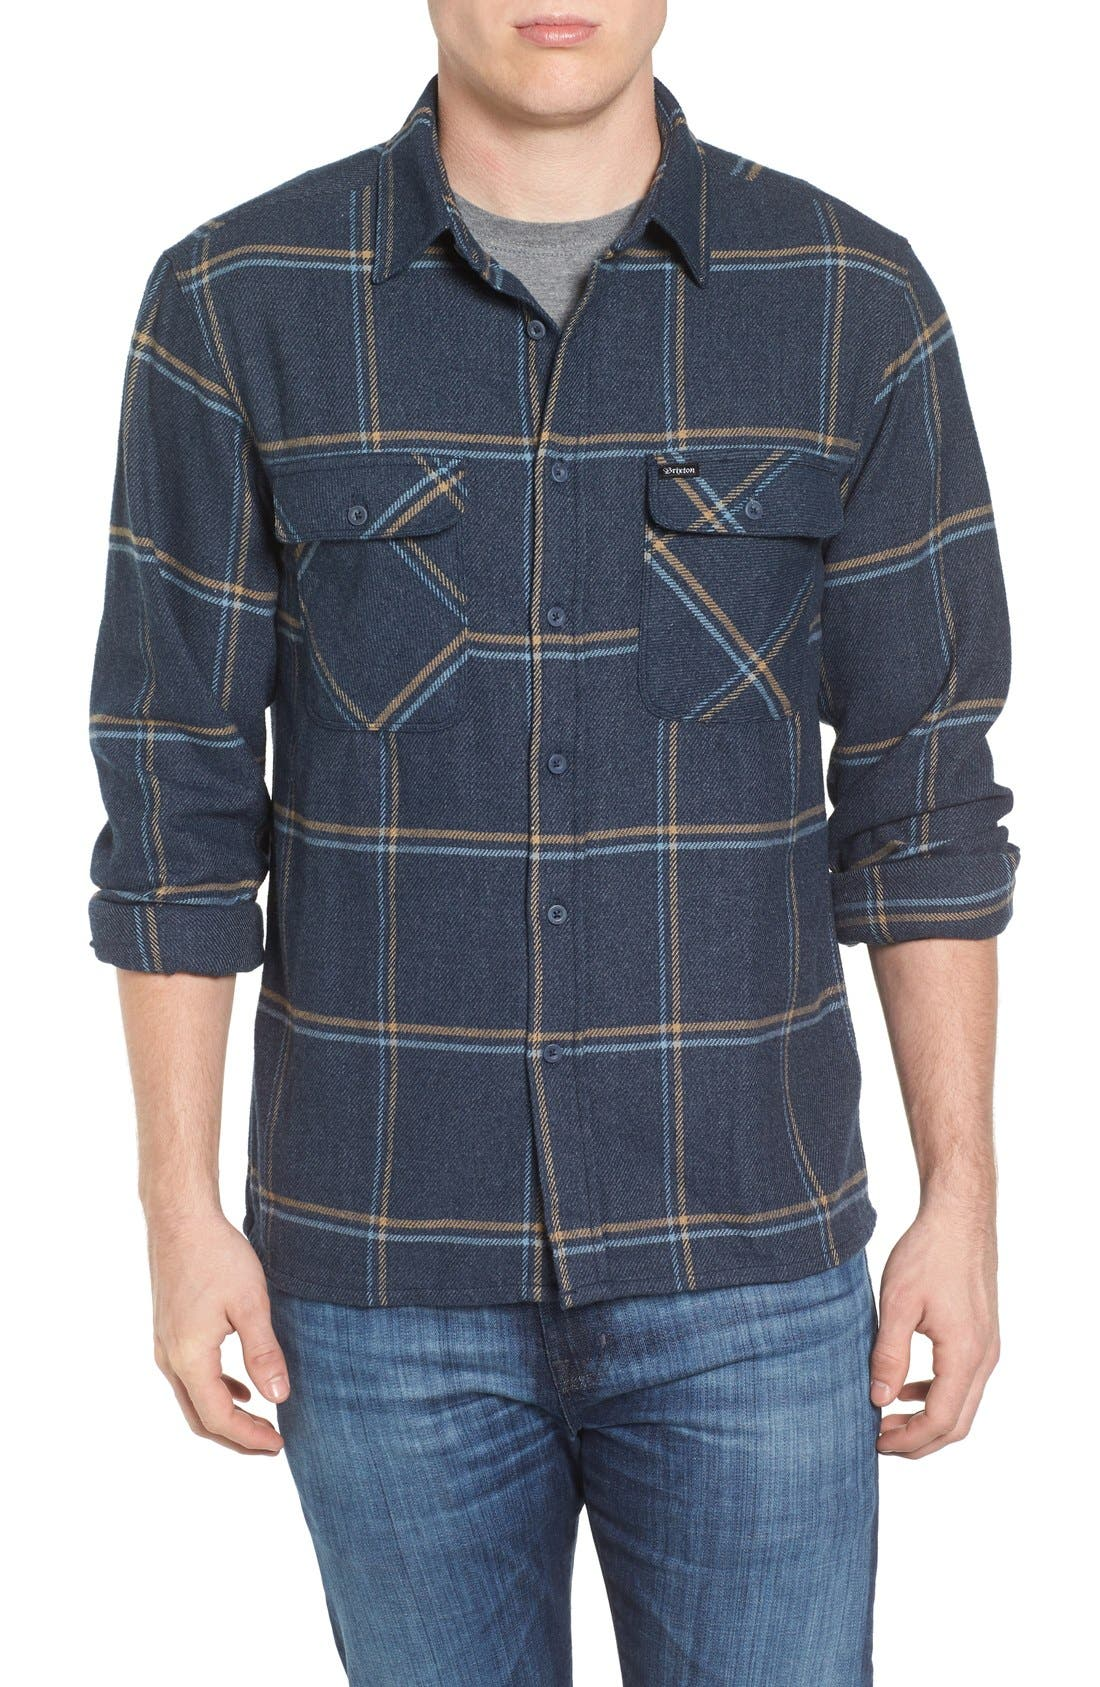 'Archie' Plaid Flannel Shirt,                         Main,                         color, Navy